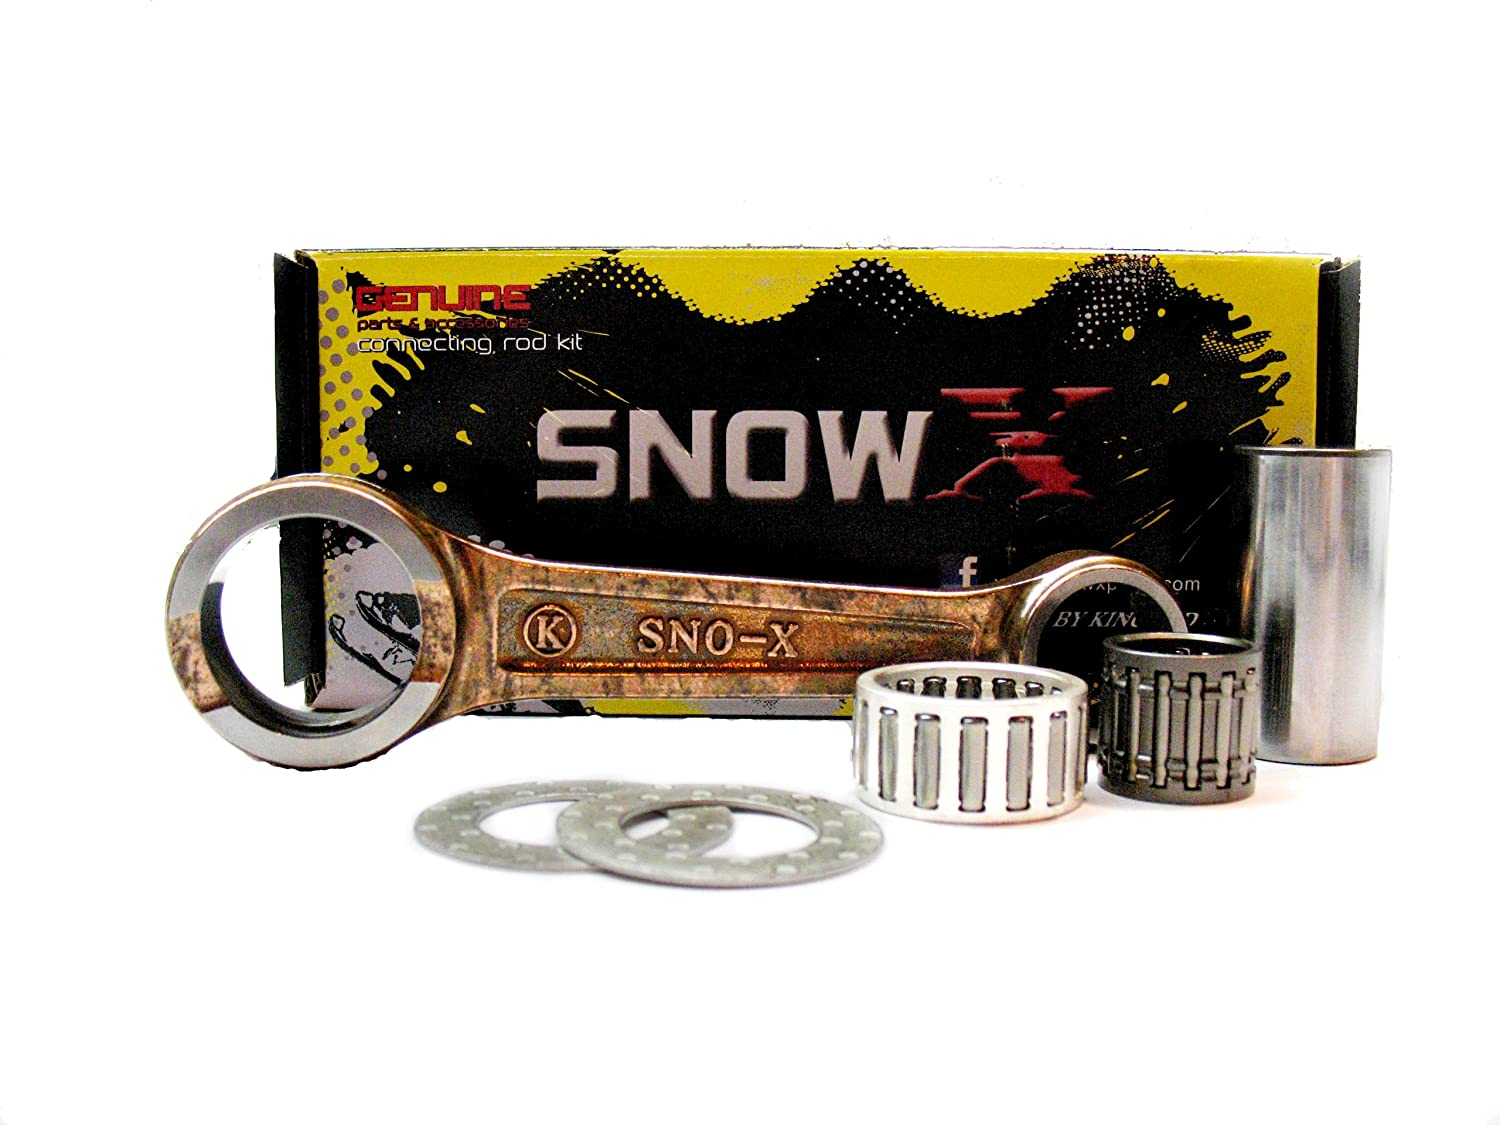 2009-2011 MX ZX 800 R PTEK and ETEC MAG Side Connecting Rod Kit snowrk47